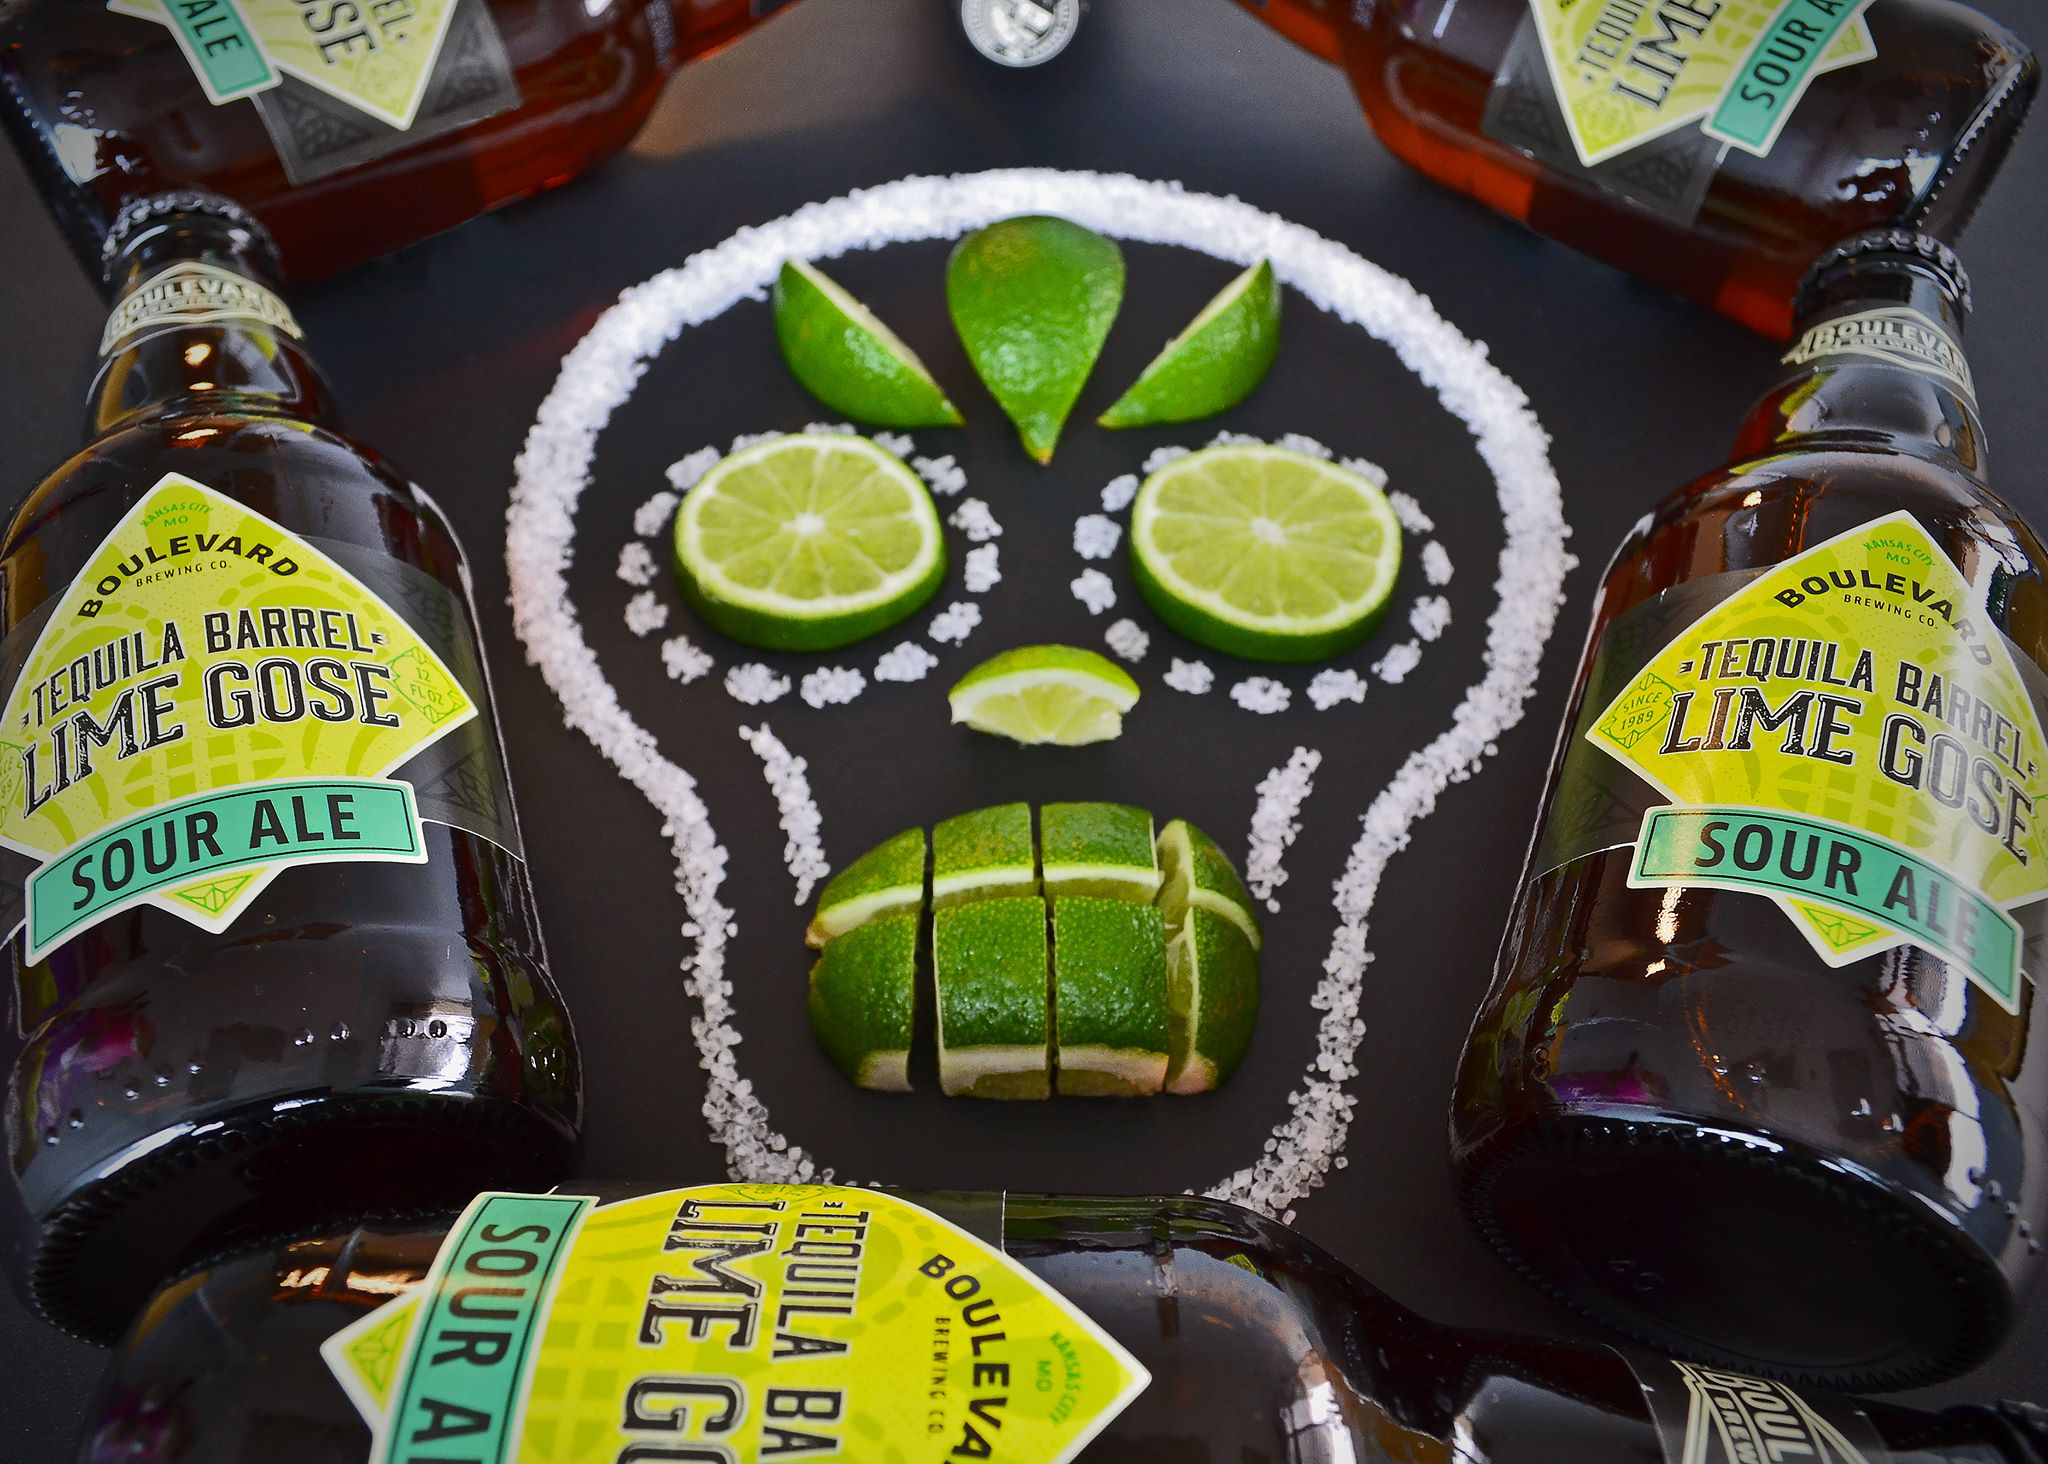 Tequila Barrel Lime Gose